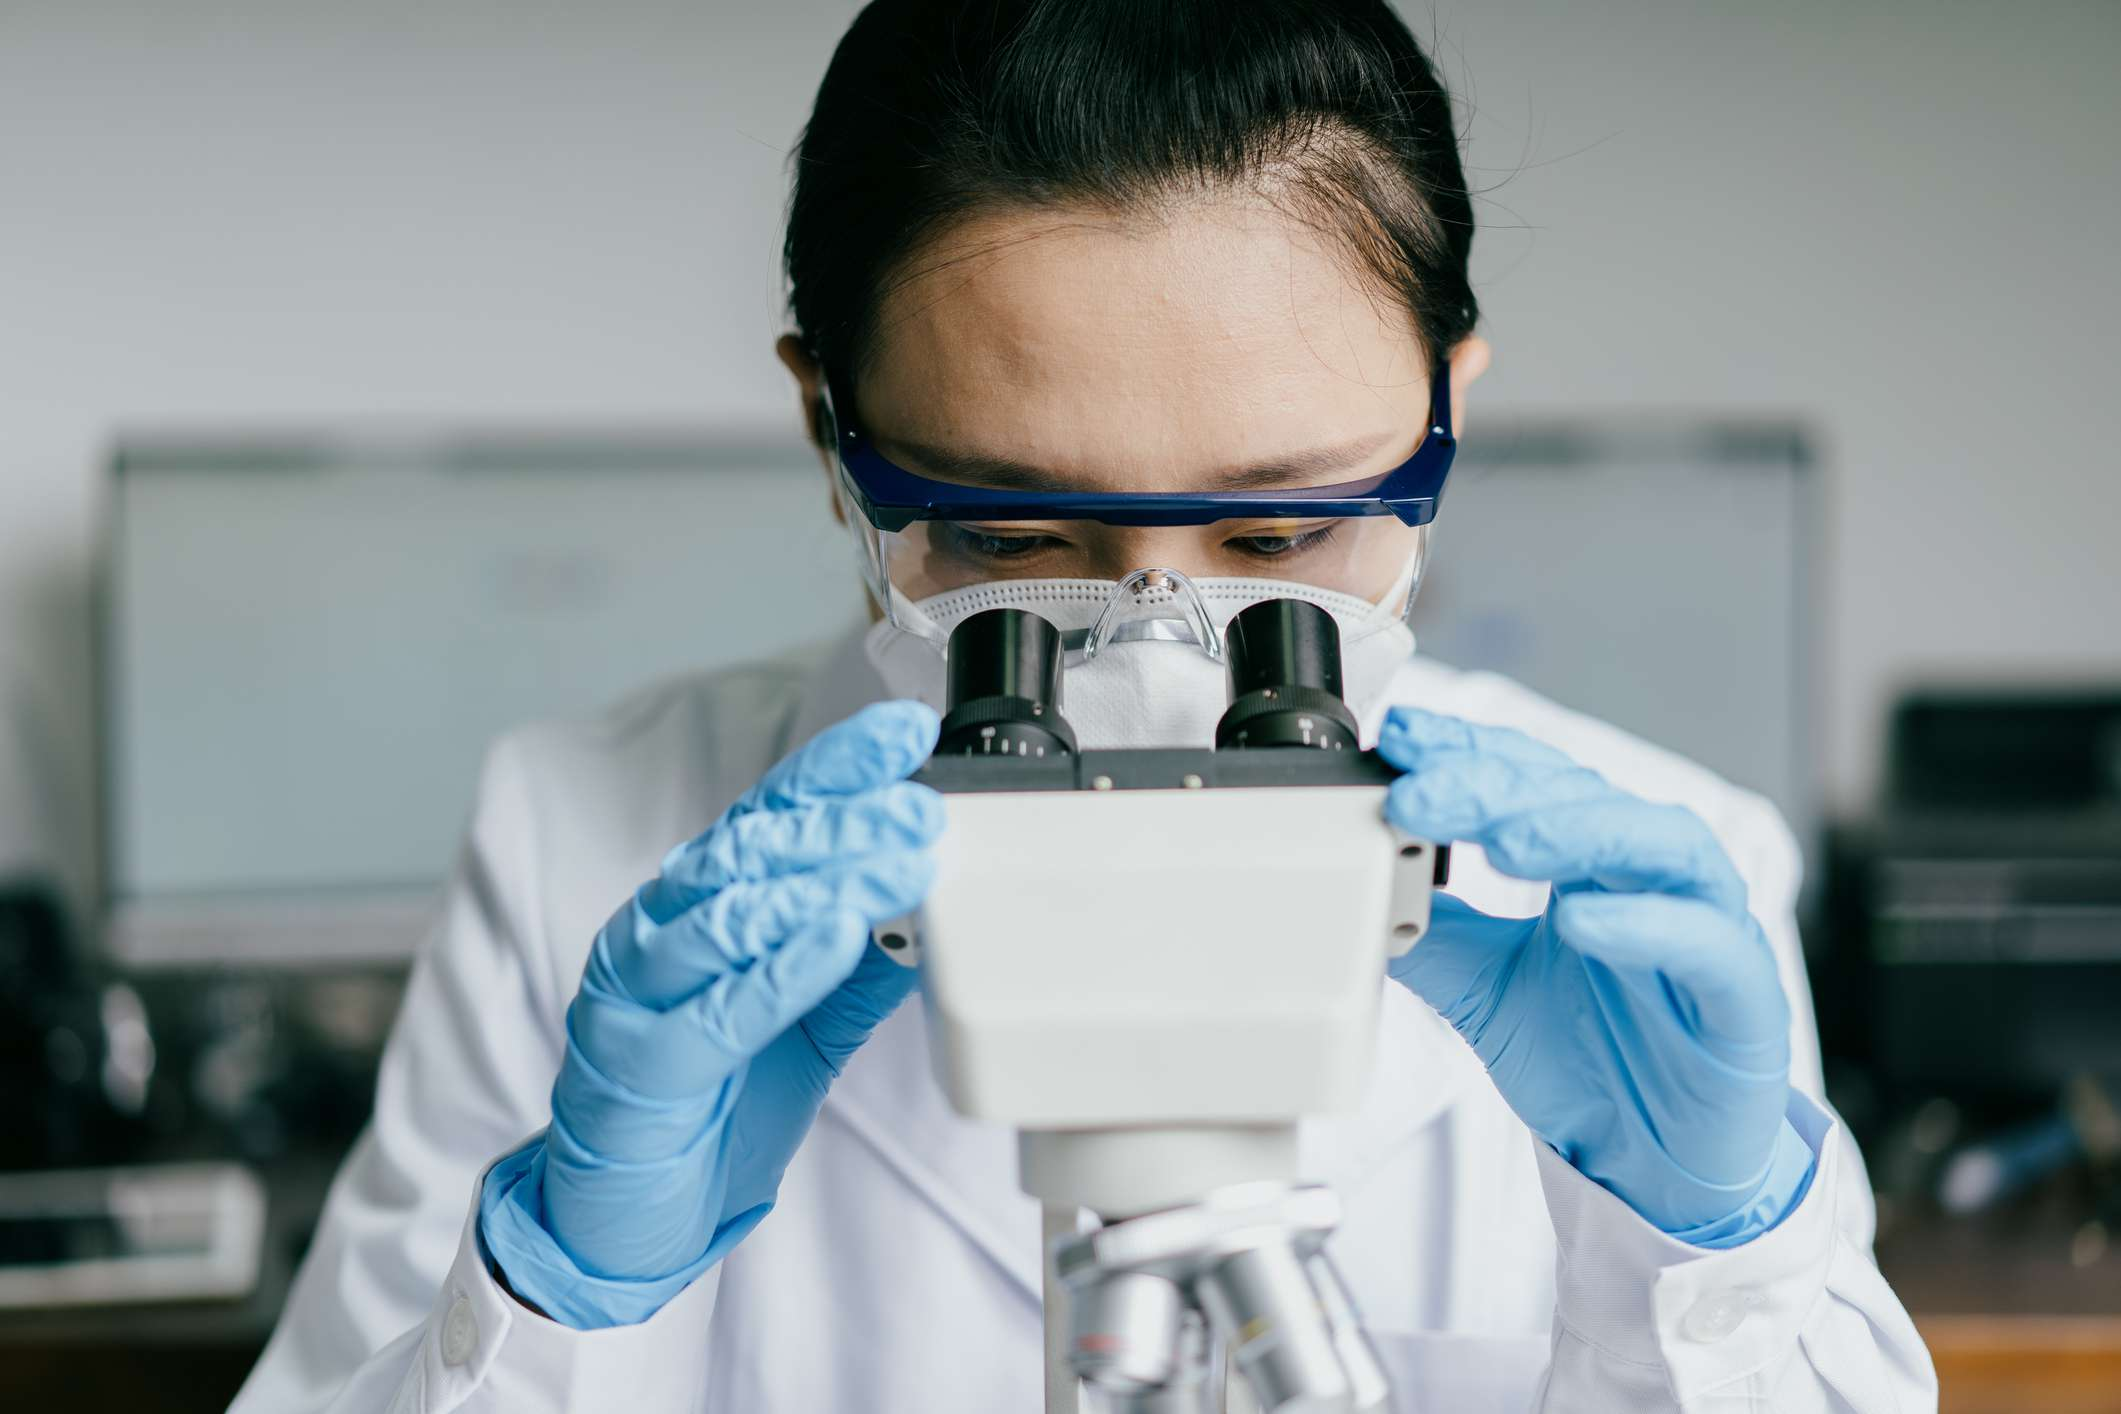 Doctor looking through microscope in laboratory